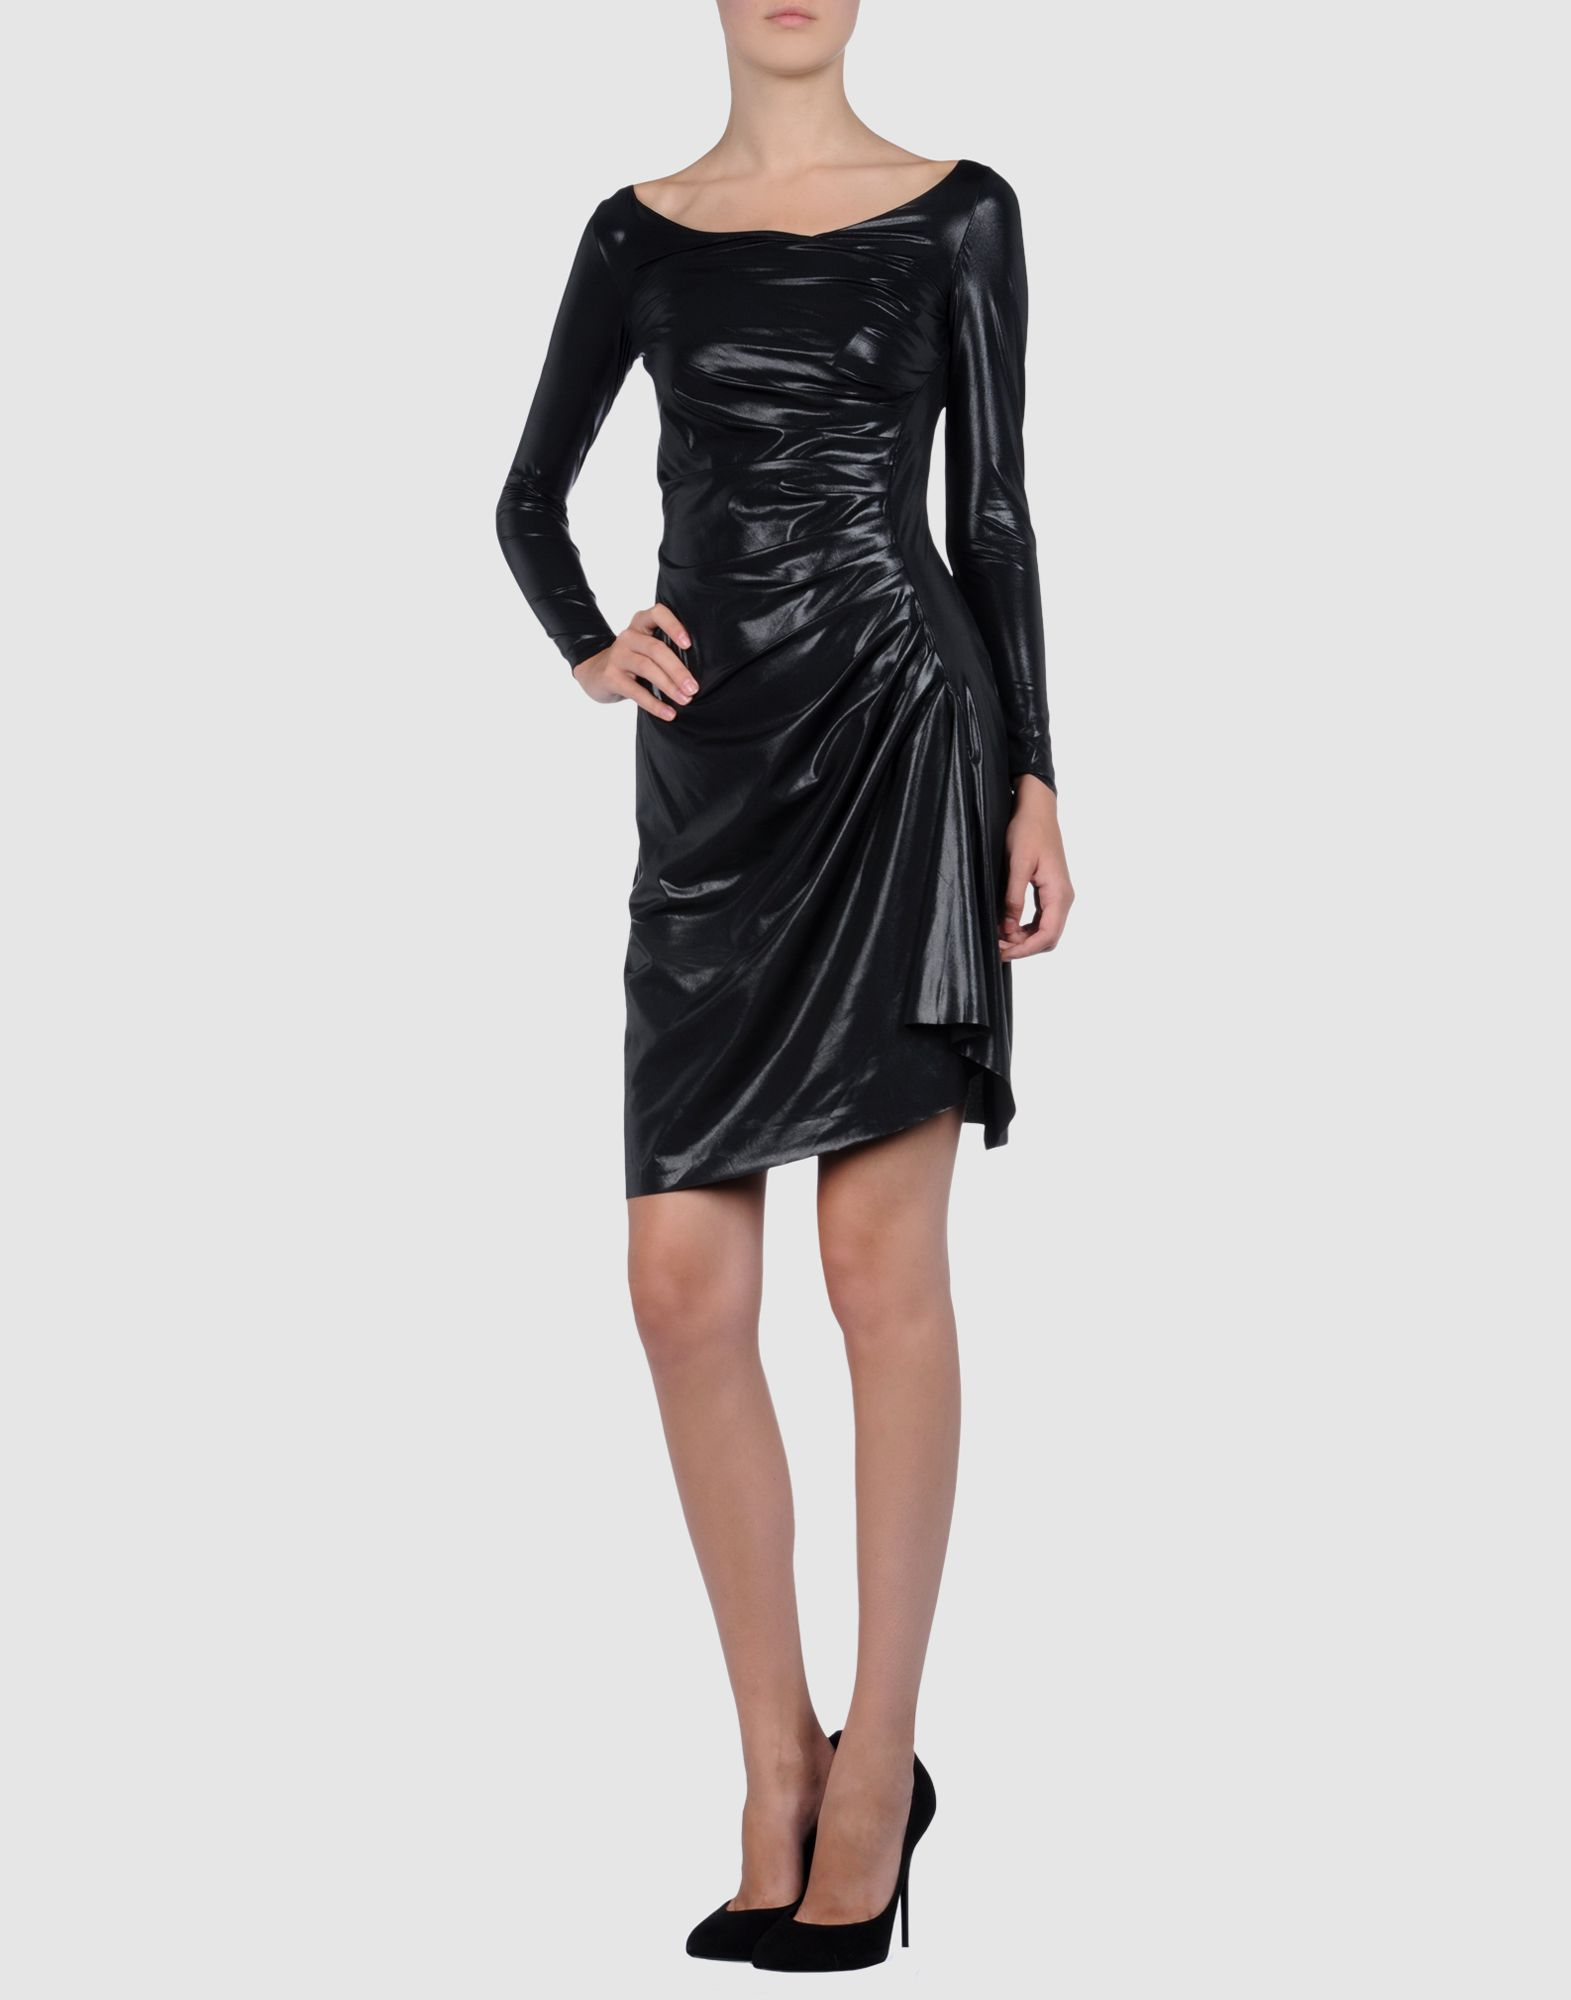 Chiara Boni The Most Popular Dress In America: La Petite Robe Di Chiara Boni Ruched Crepe Dress In